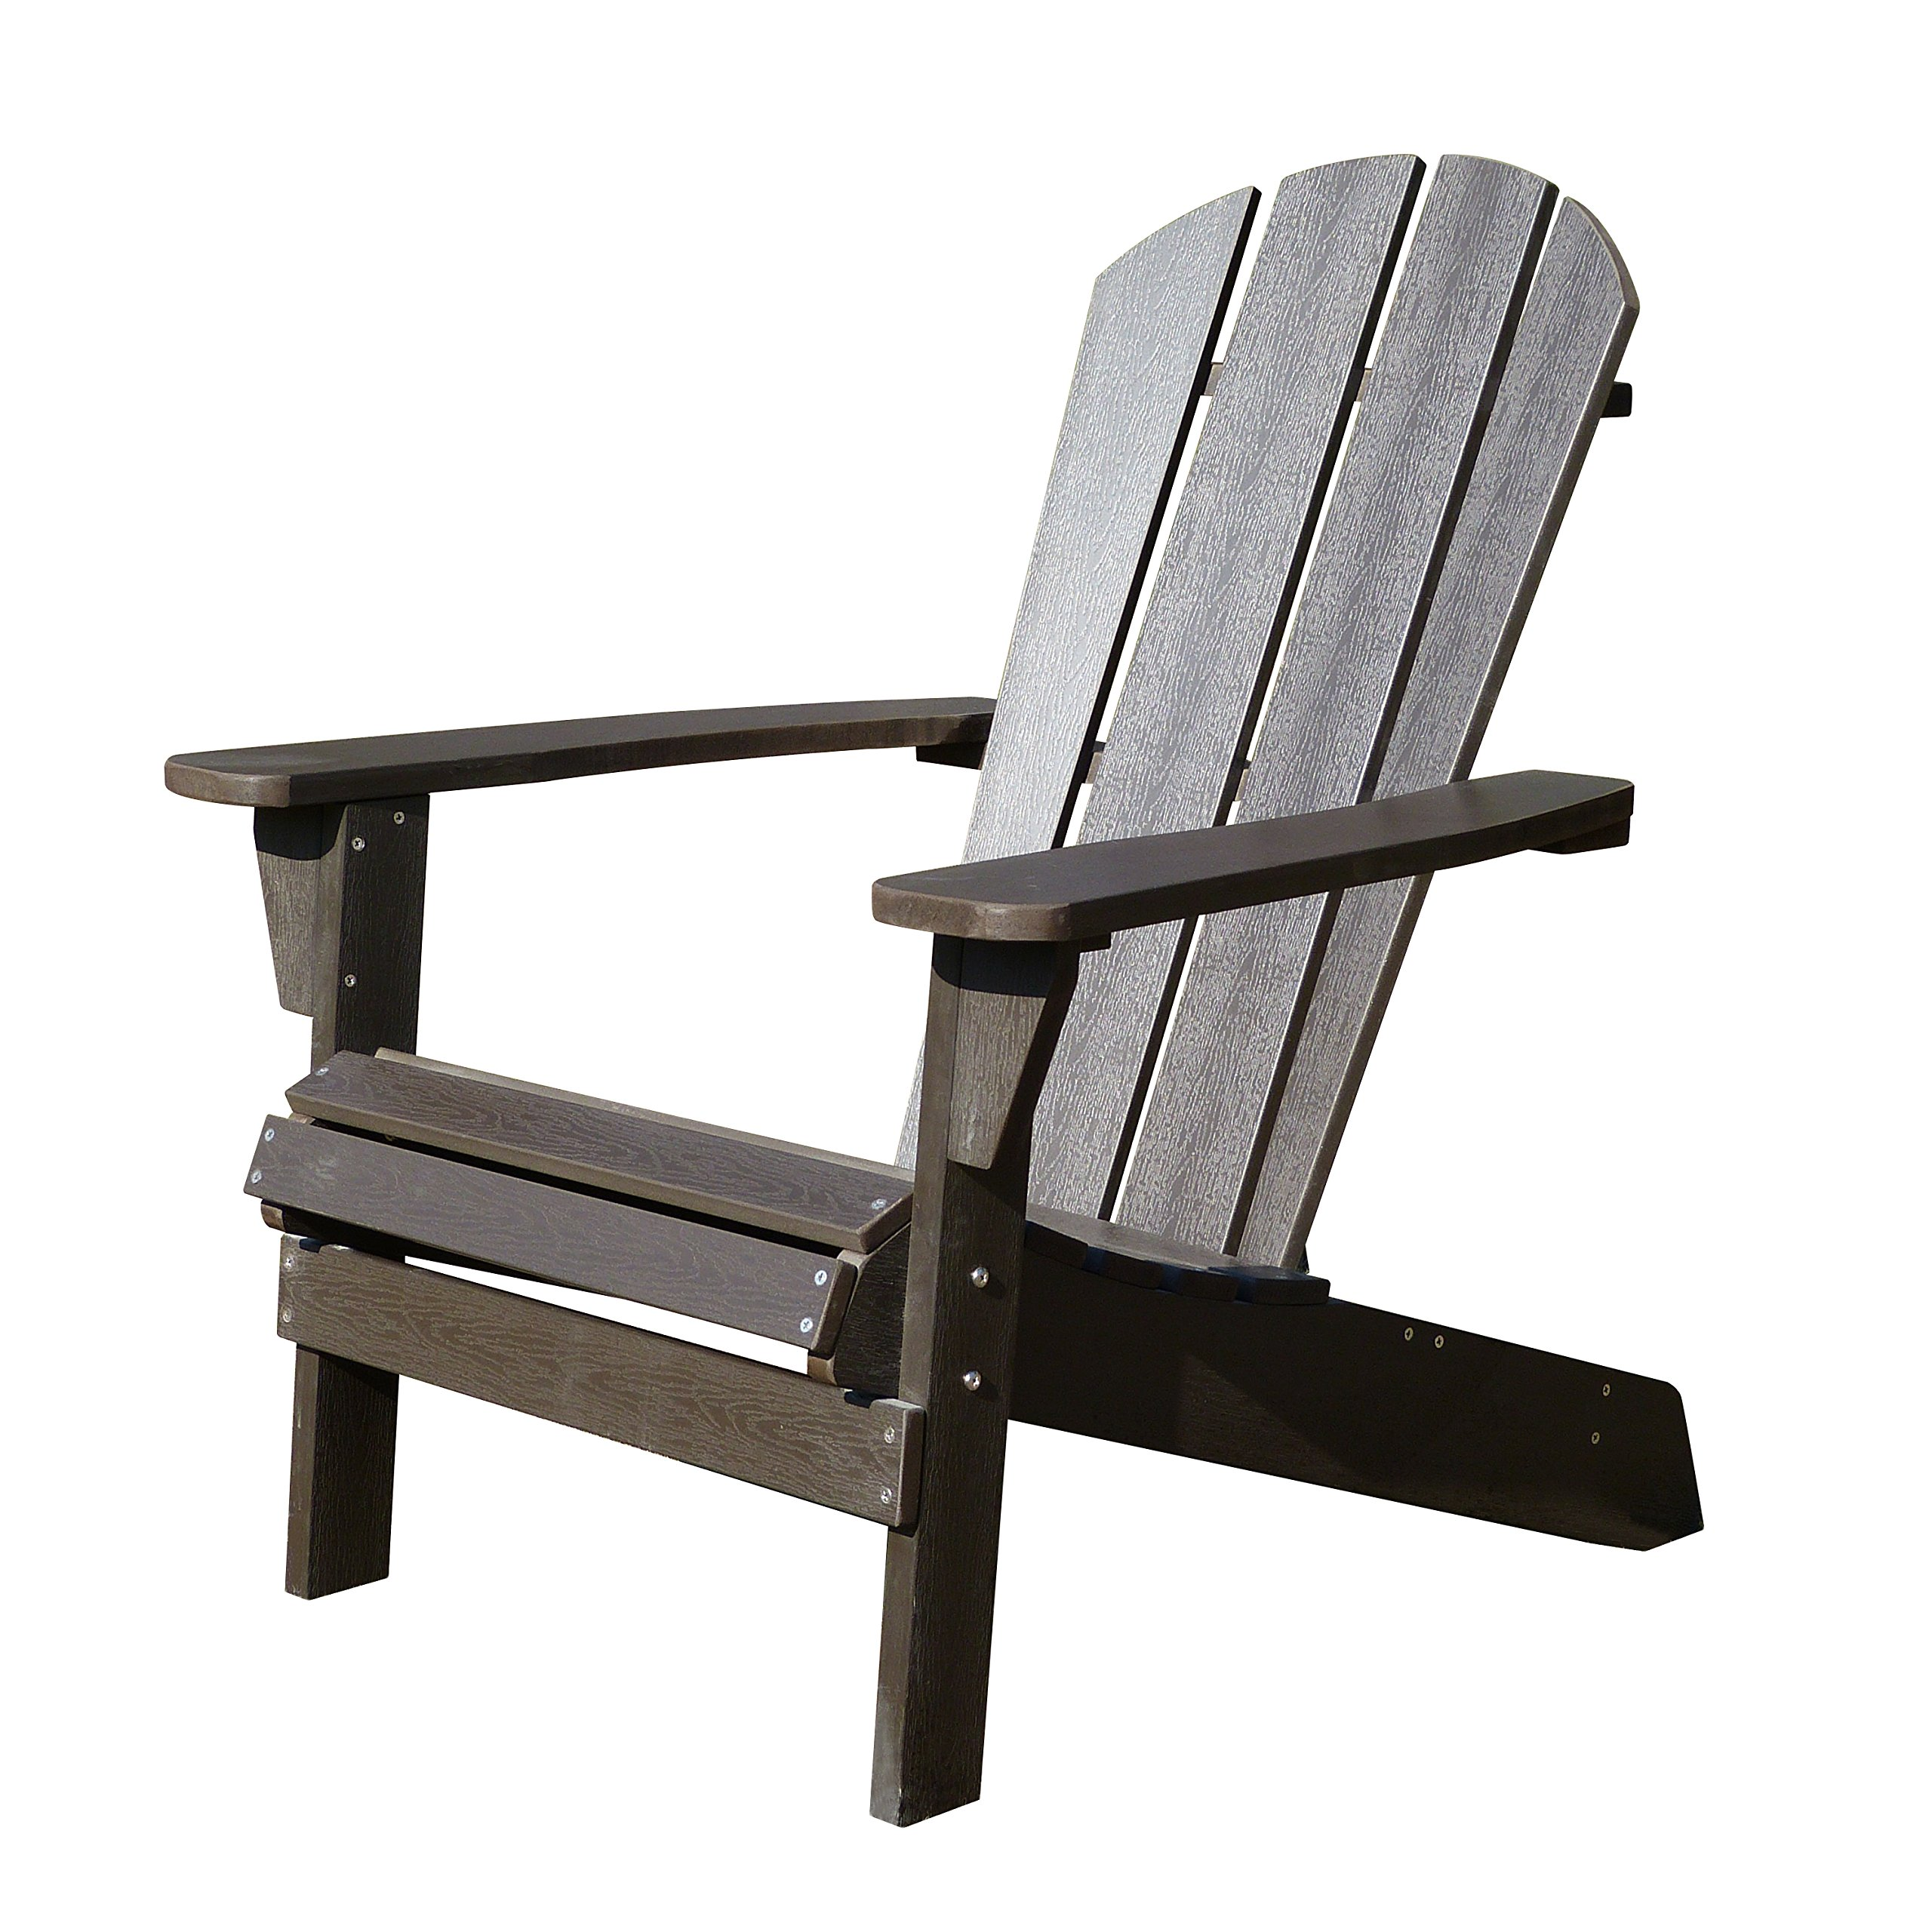 Northbeam Faux Wood Foldable Relaxed Adirondack Chair, Outdoor, Garden, Lawn, Deck Chair, Espresso by northbeam